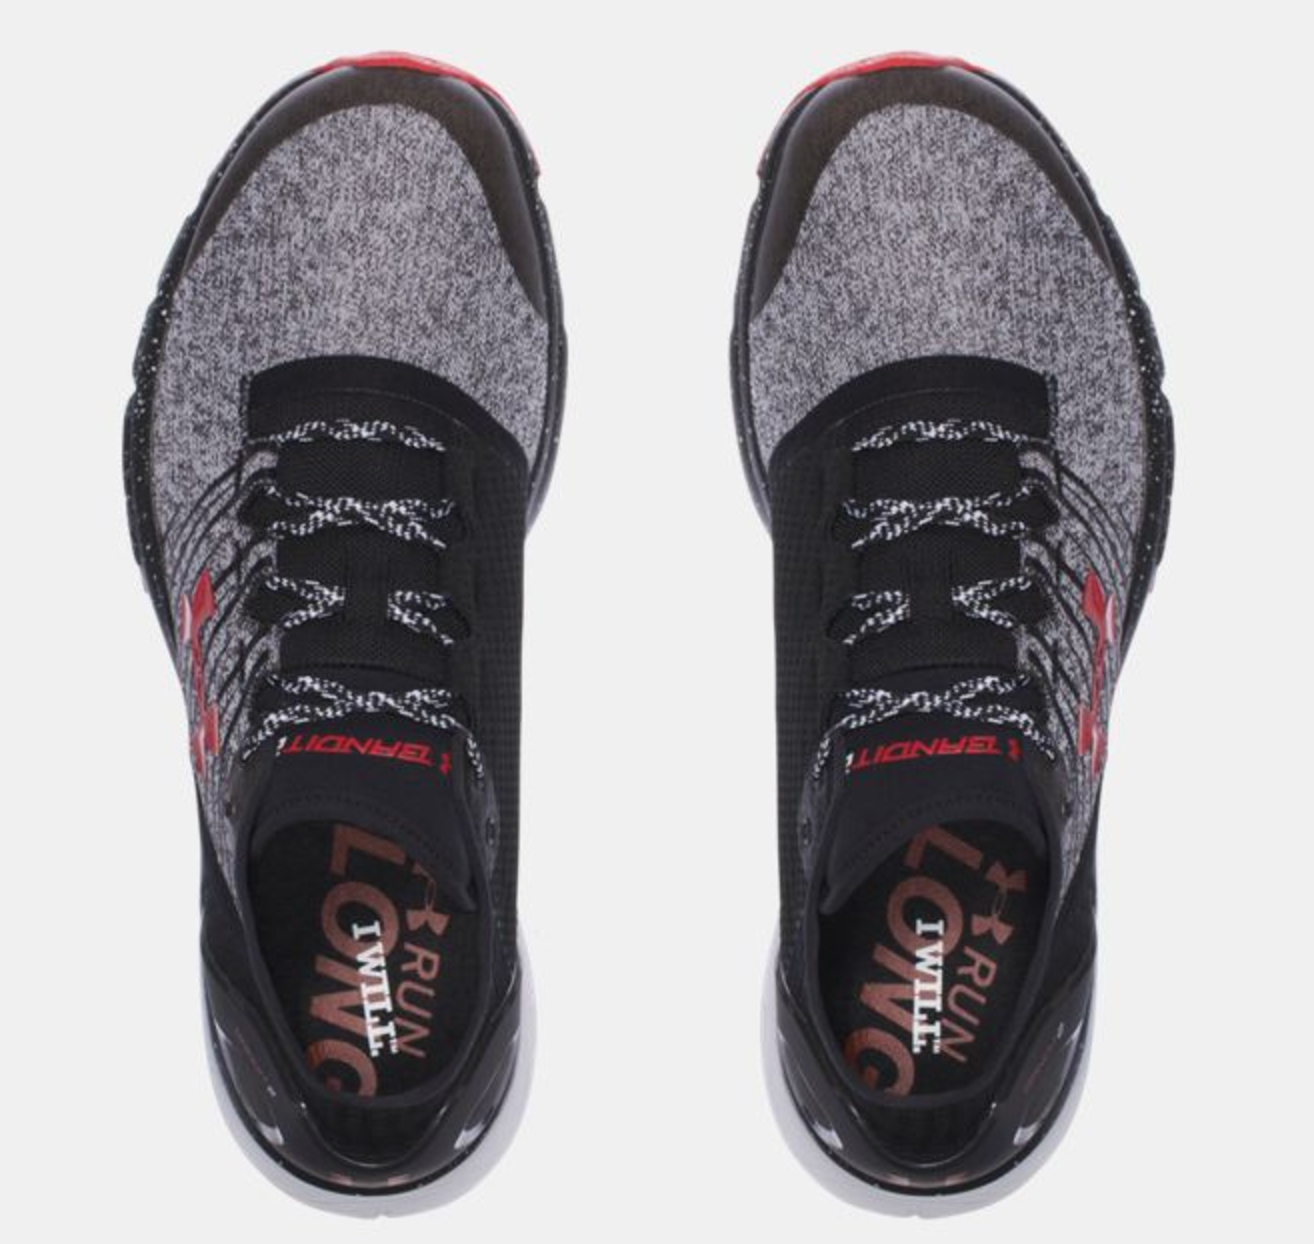 under armour charged bandit 2 men's 7